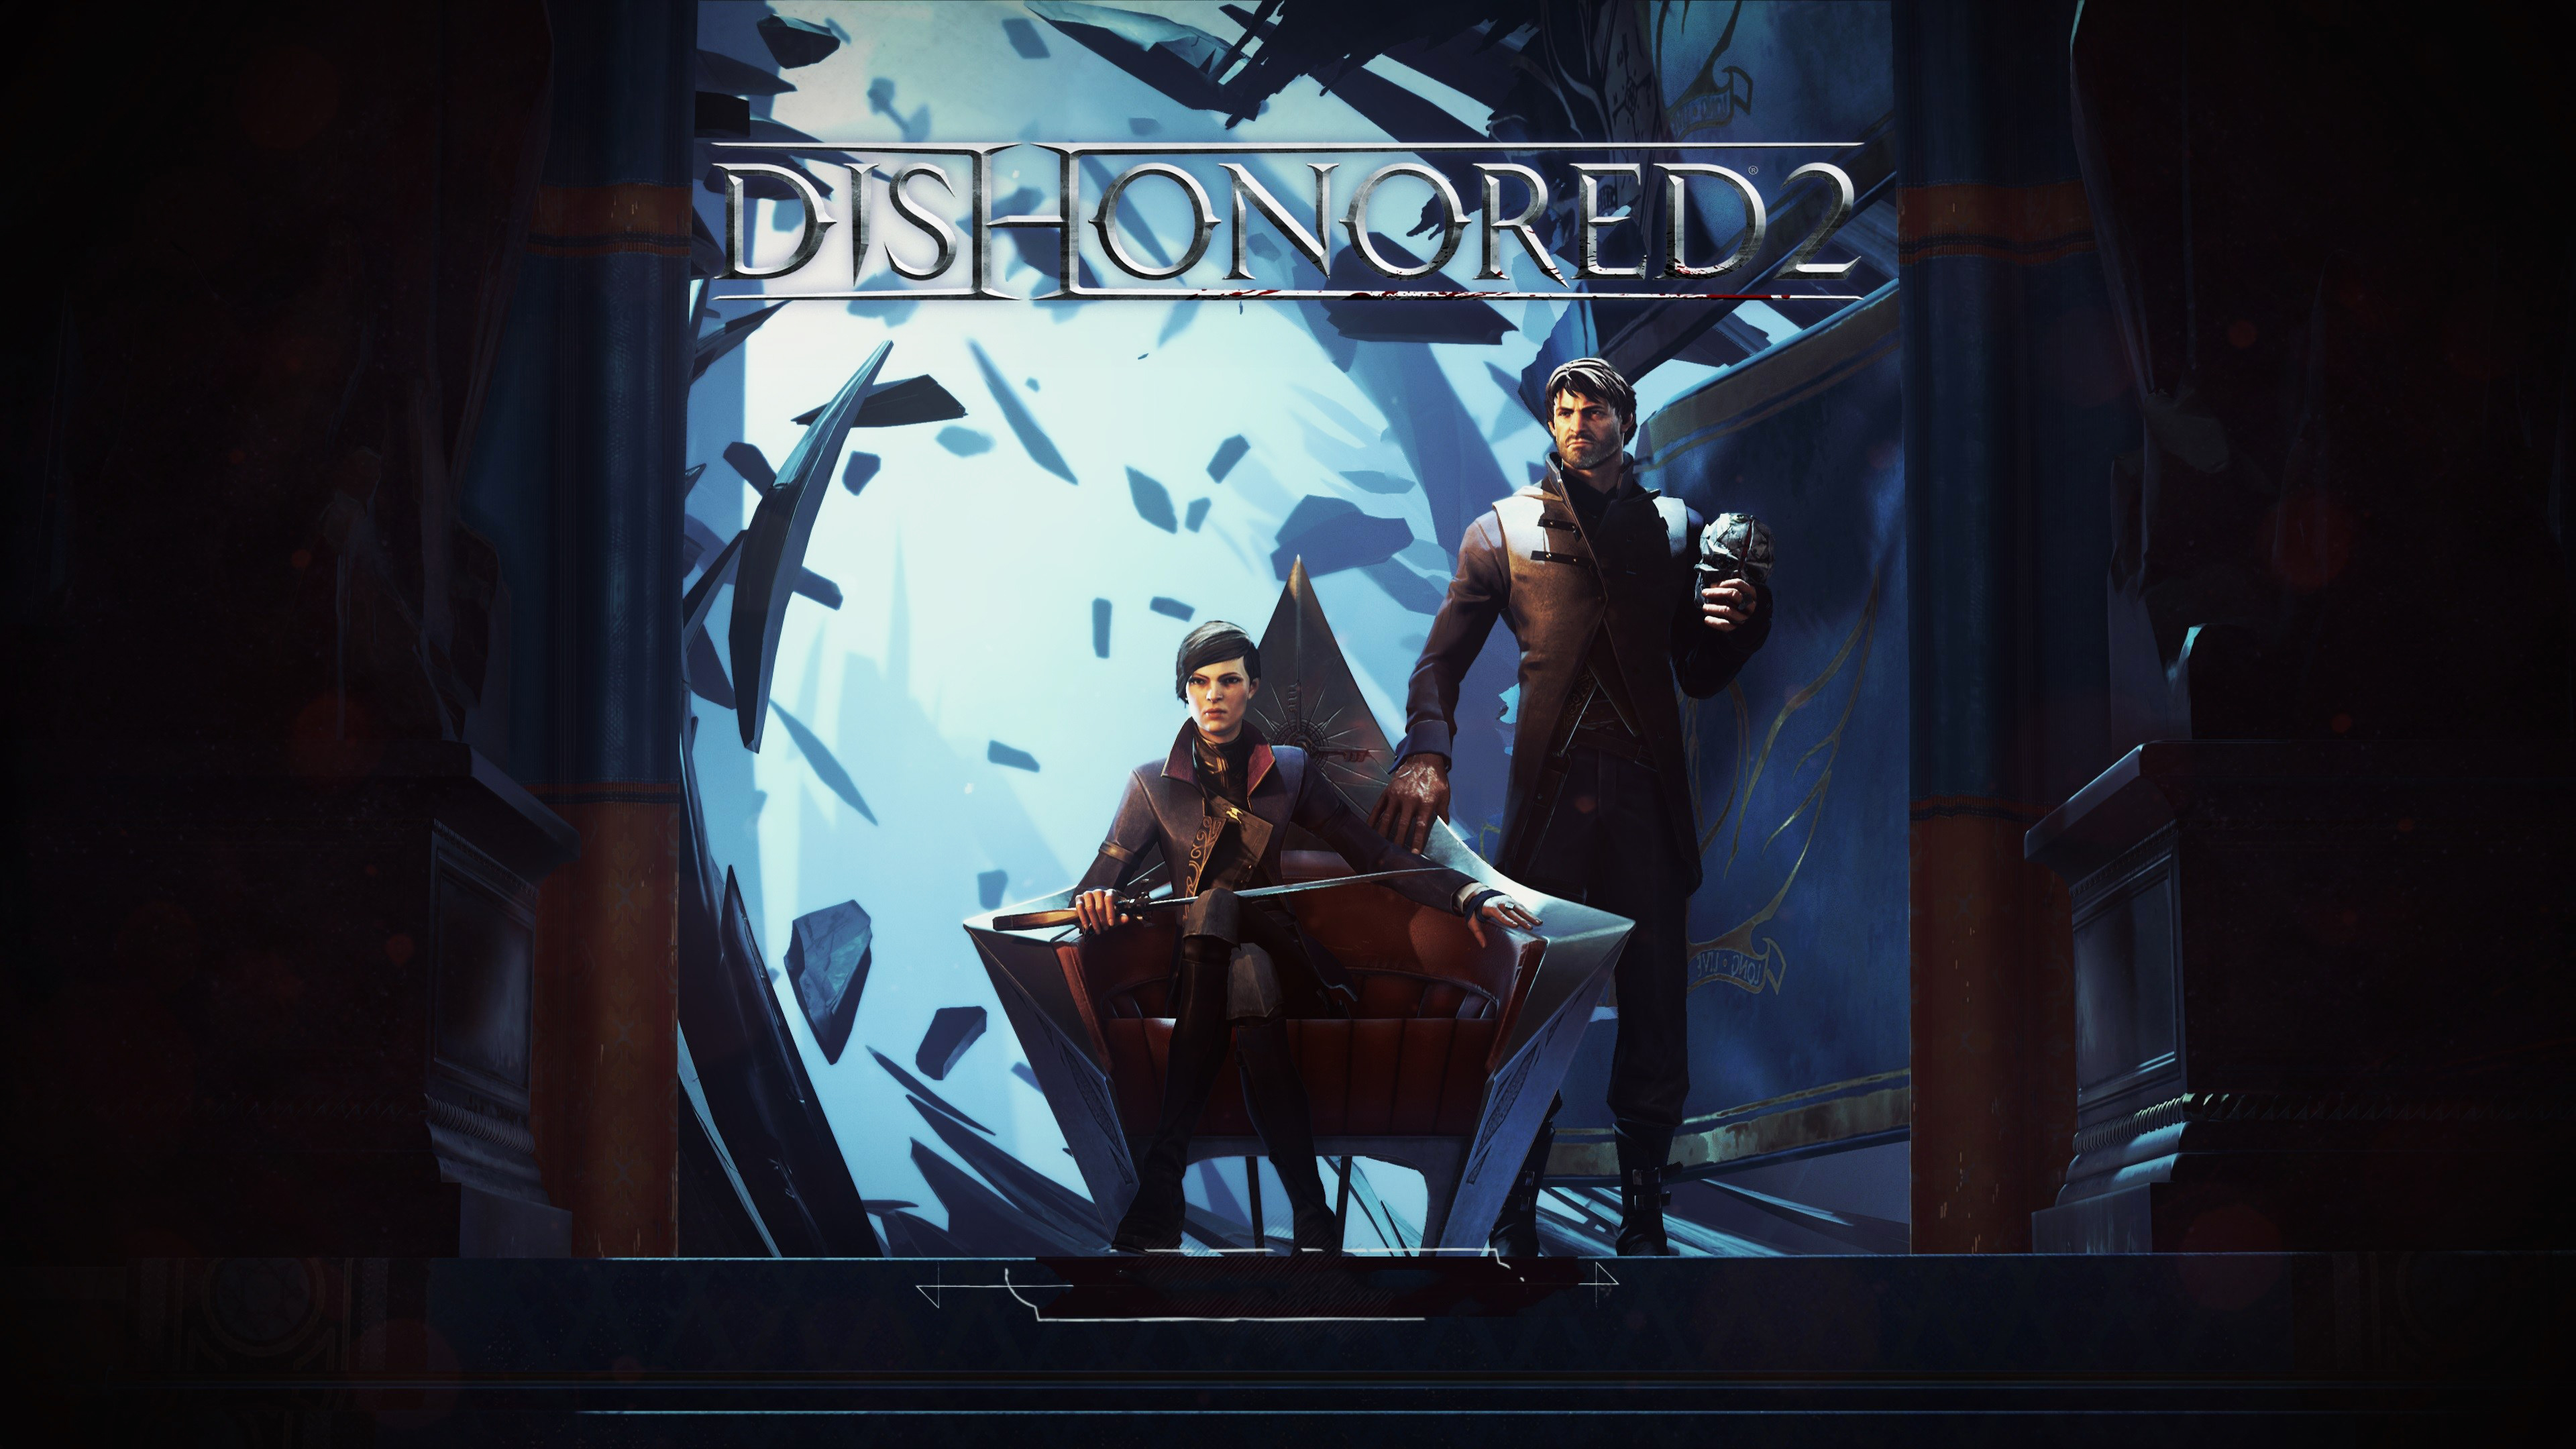 Dishonored 2018 4k Hd Games 4k Wallpapers Images